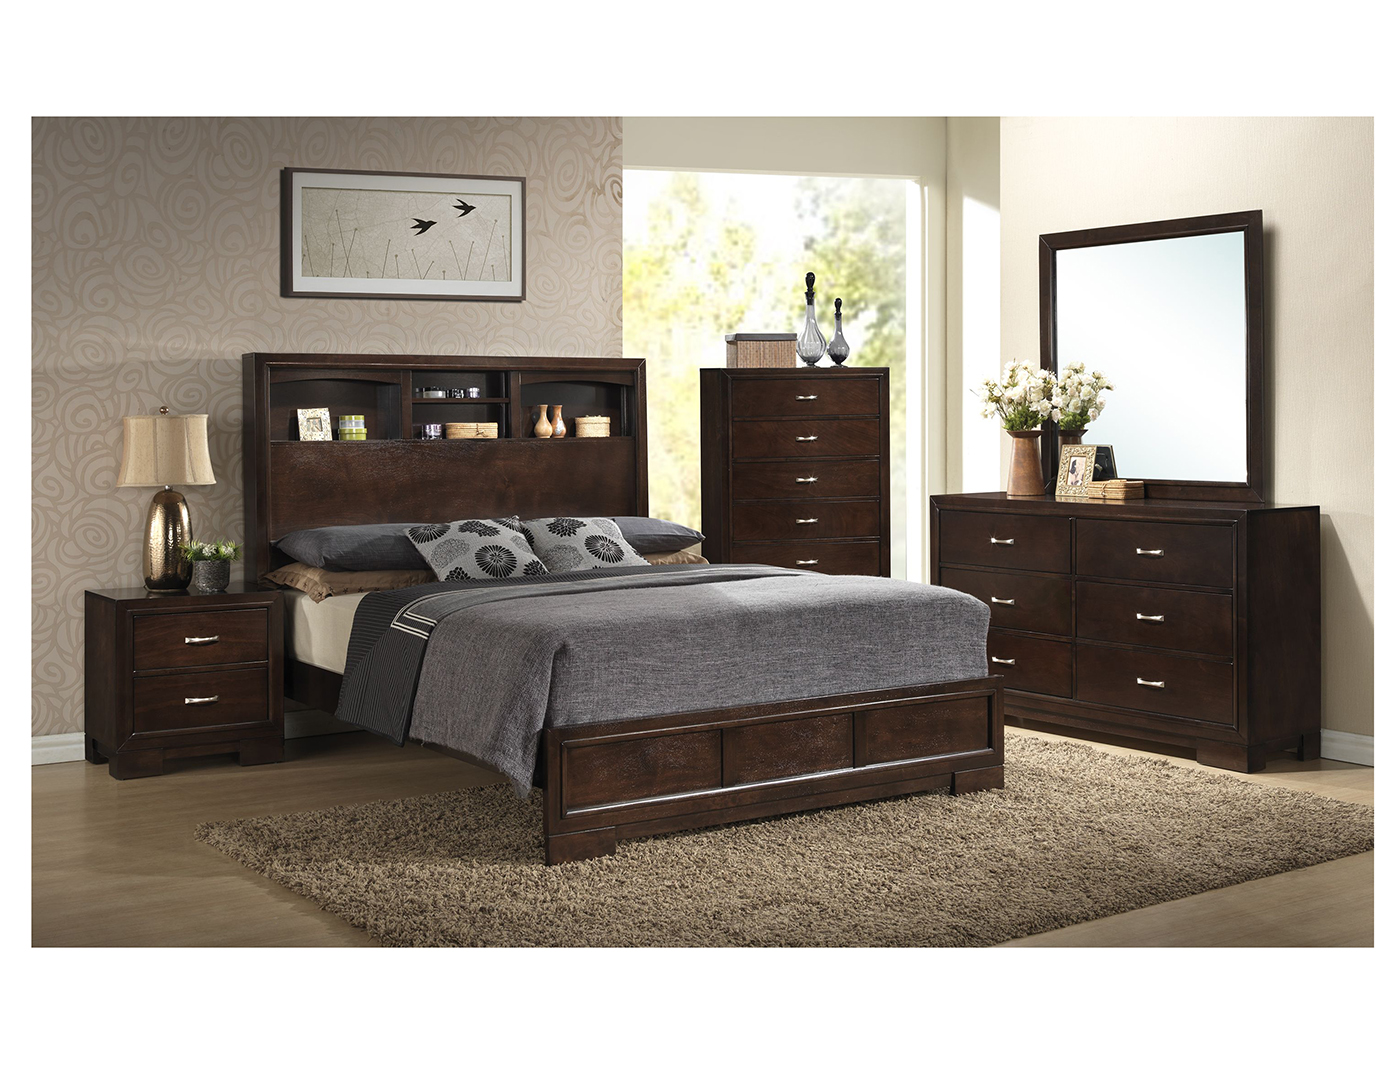 Harper 5 Pc King Bedroom Set